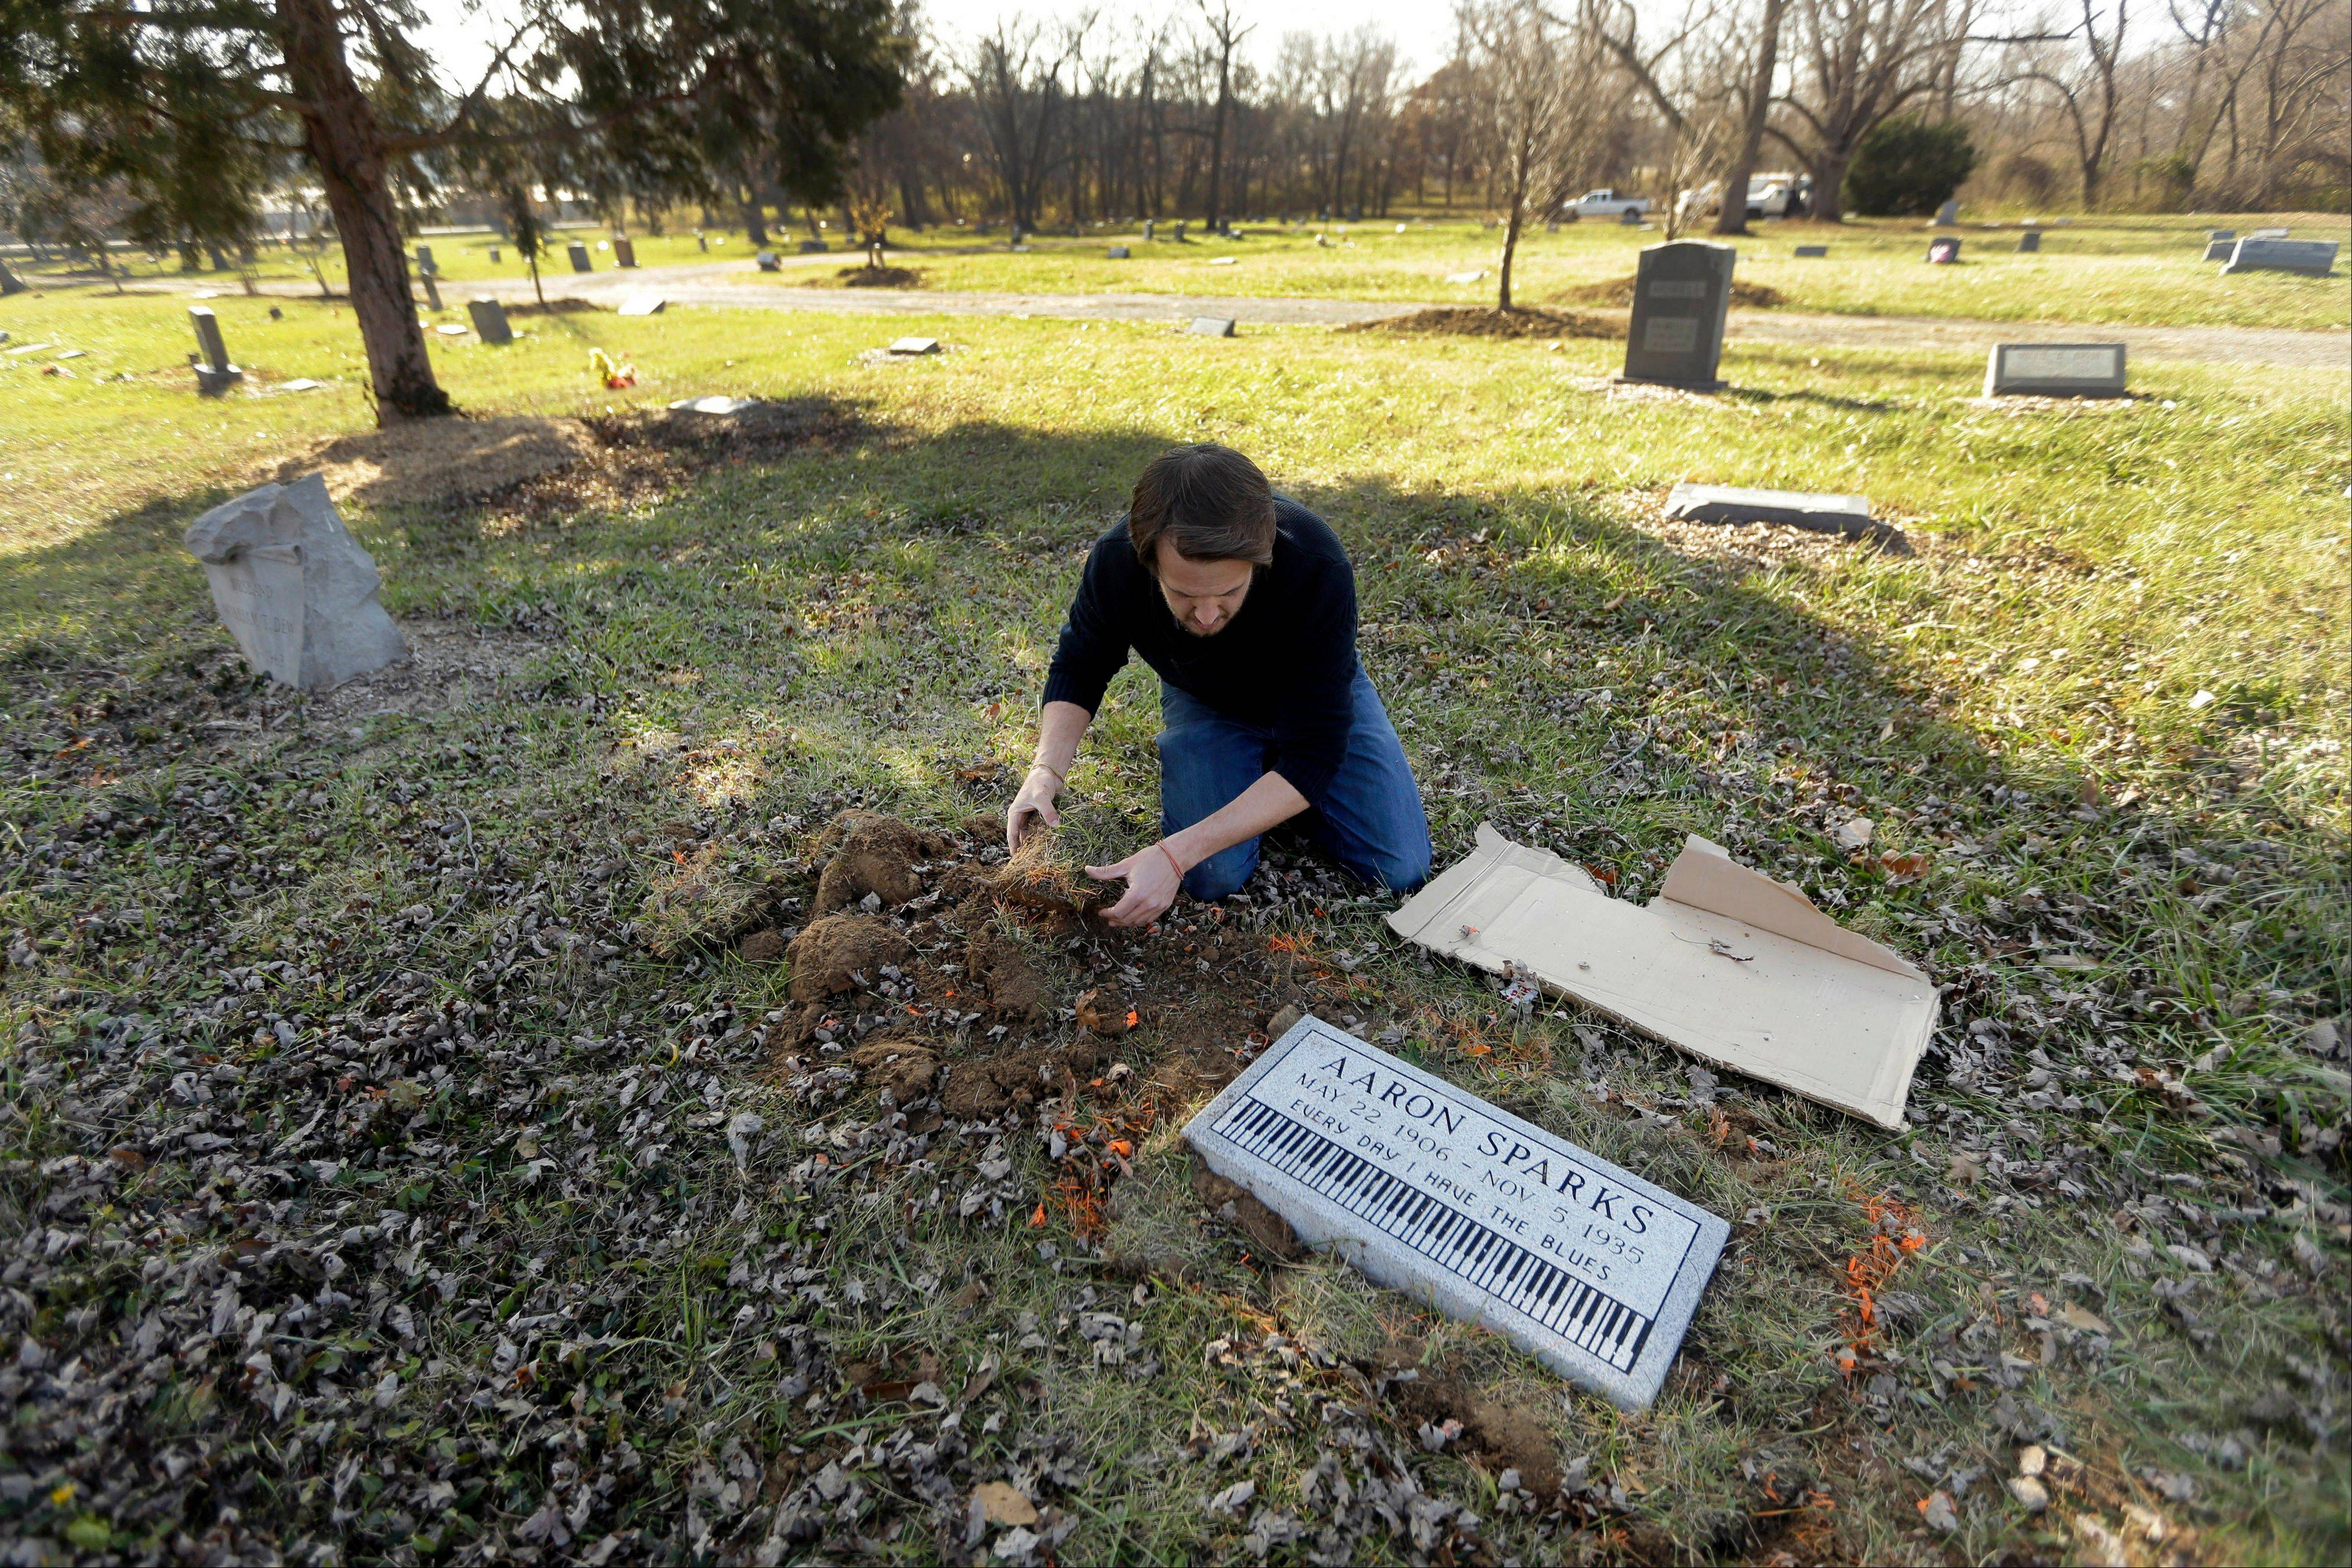 Aaron Pritchard replaces grass after laying a headstone on the previously unmarked grave of blues musician Aaron Sparks in Crestwood, Mo. Pritchard is part of the Killer Blues Headstone Project, a nonprofit effort to posthumously honor sometimes long-forgotten blues musicians with grave markers.